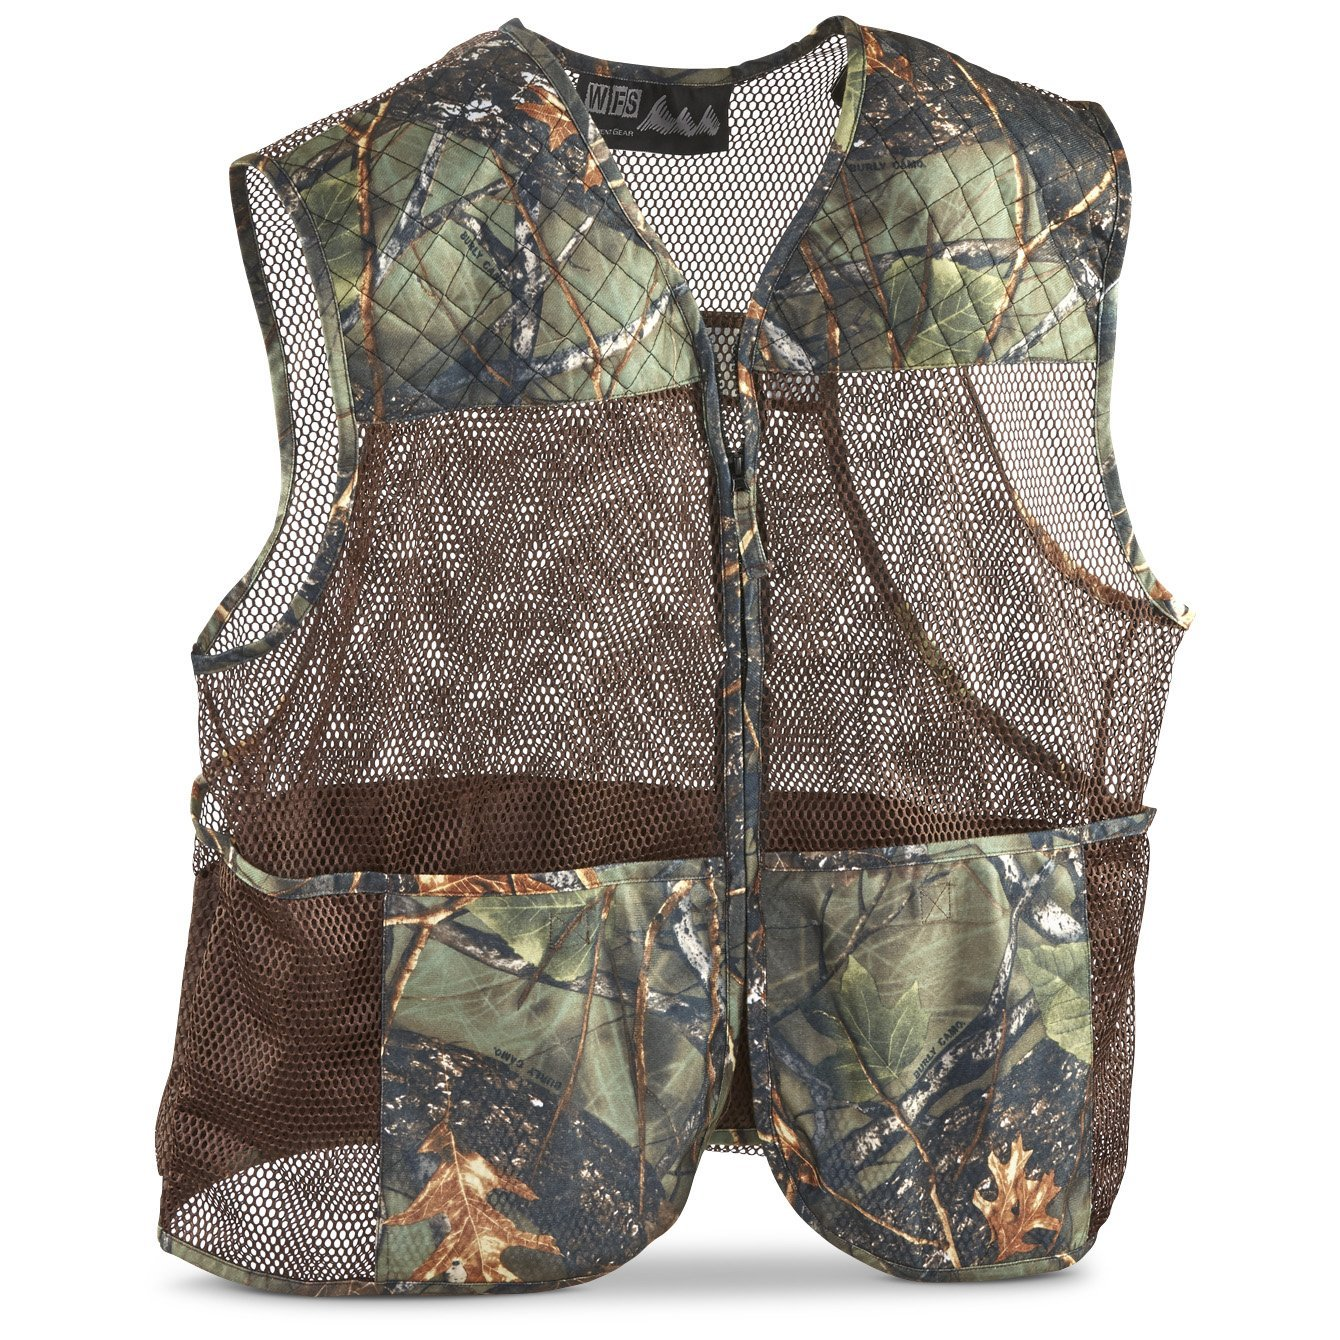 Mesh Game Vest World Famous Sports, Burly, M